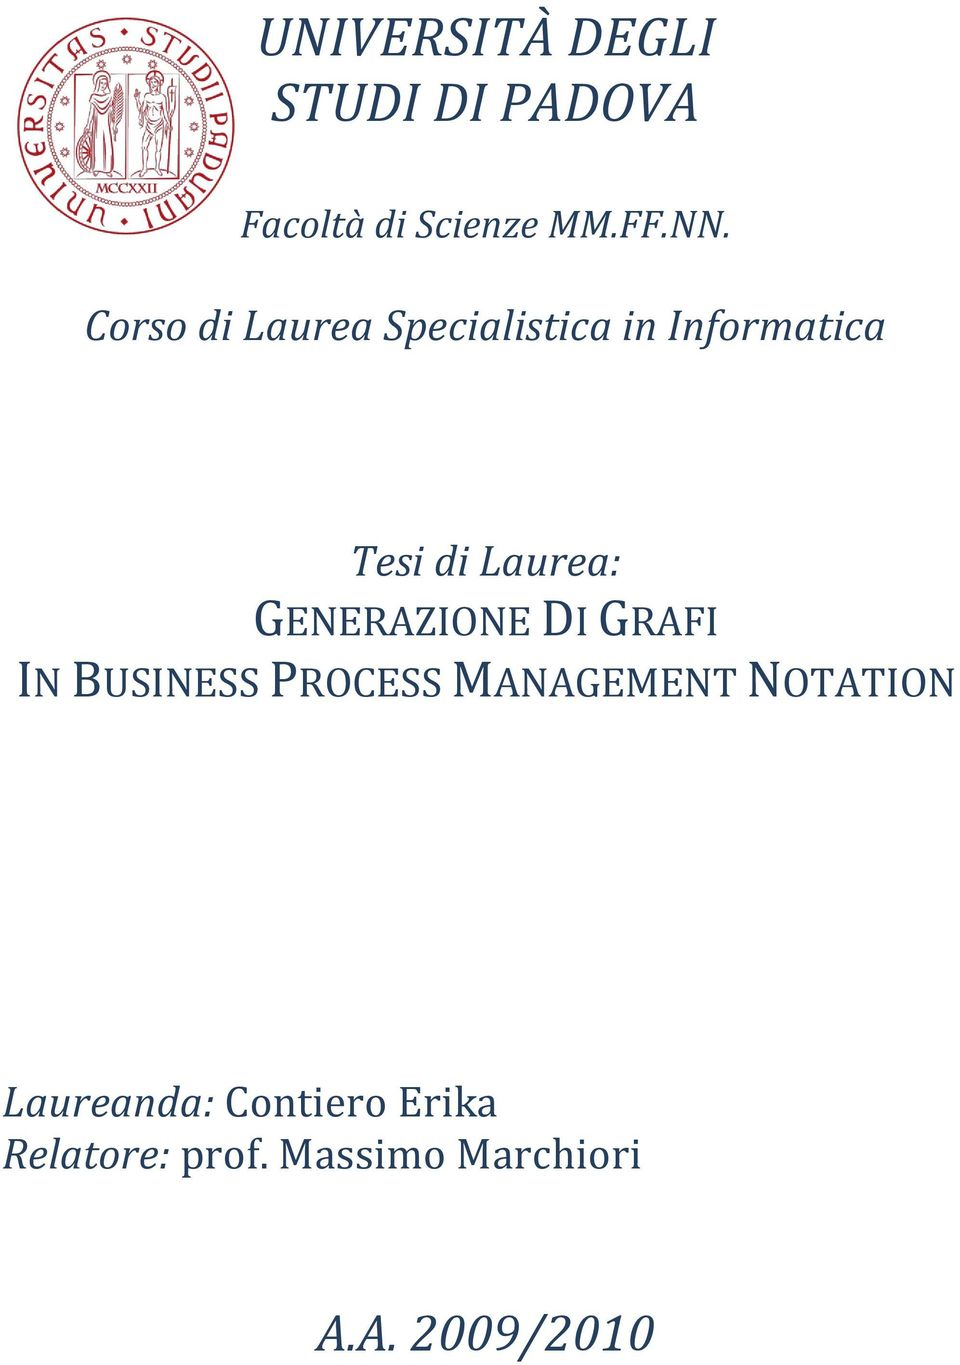 GENERAZIONE DI GRAFI IN BUSINESS PROCESS MANAGEMENT NOTATION